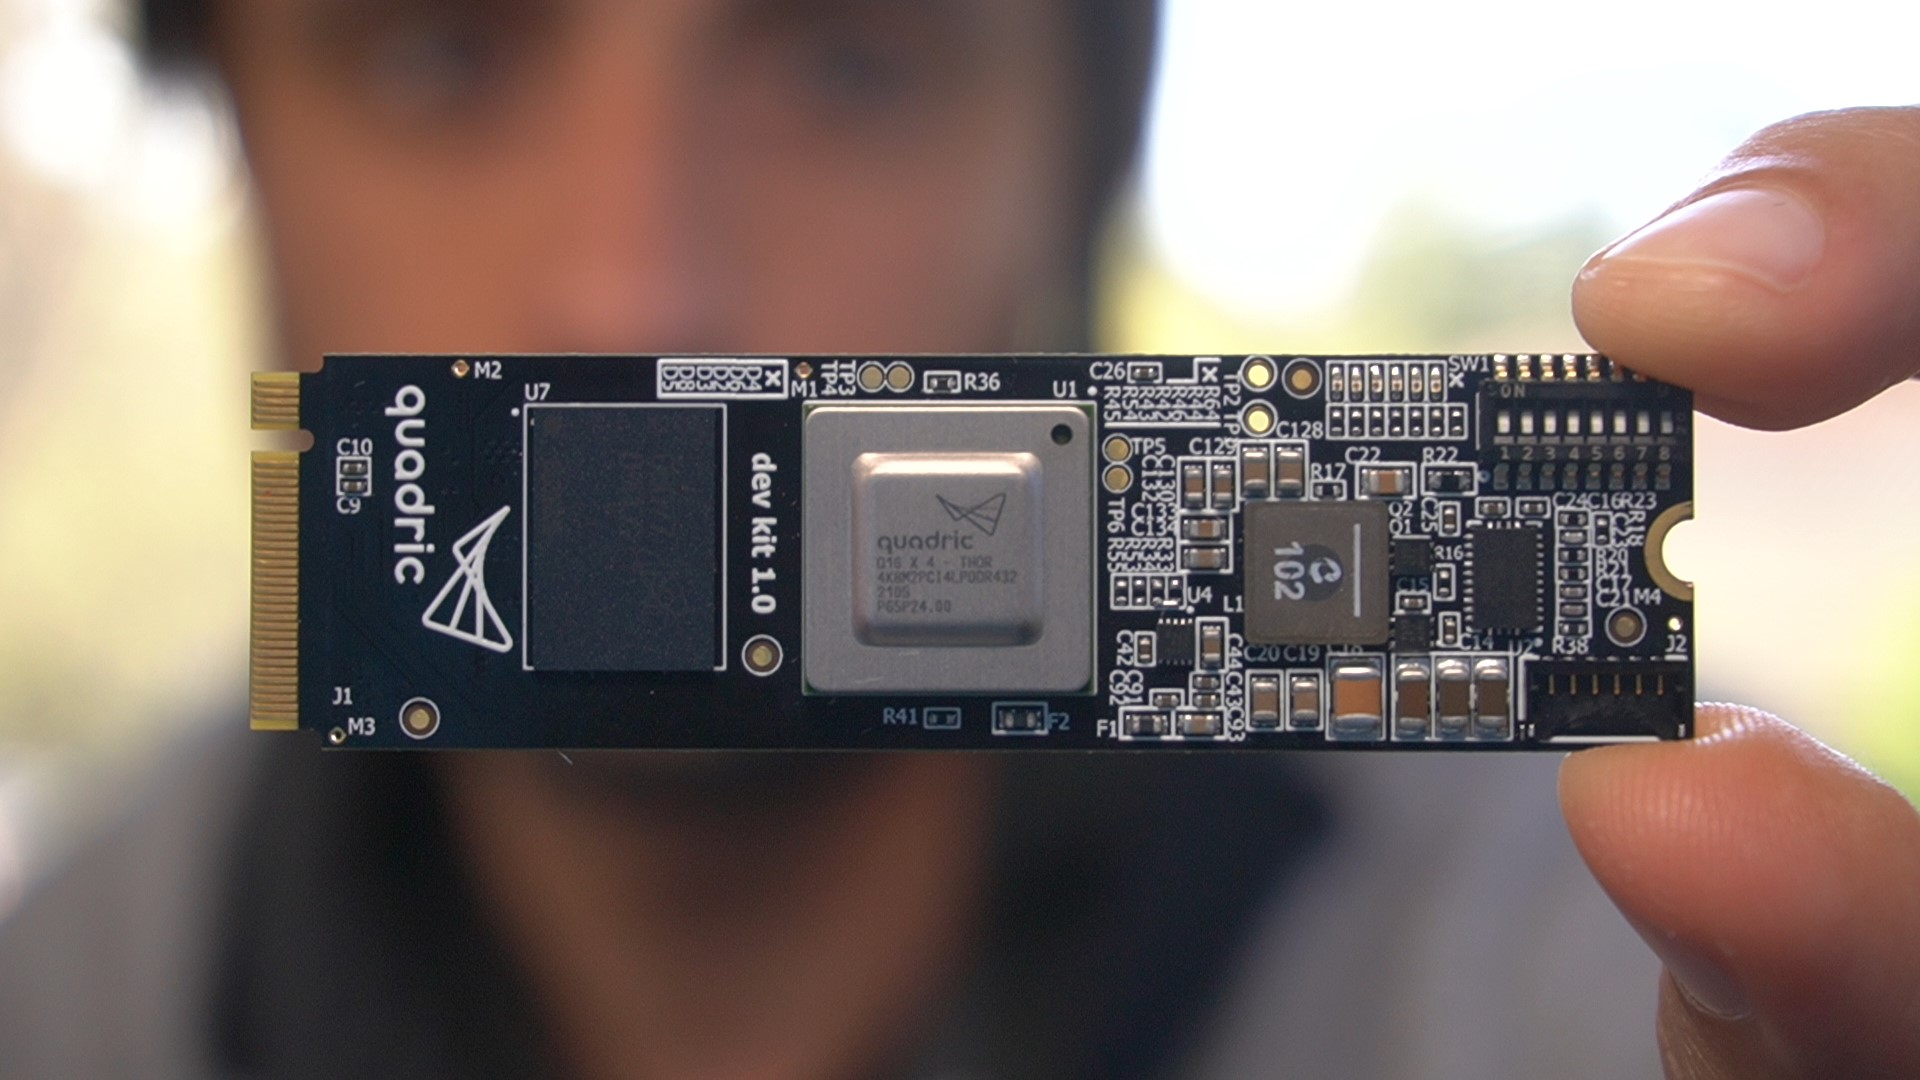 Close up photograph of the quadric Dev Kit v1.0. The easiest way to experience the q16 Processor.